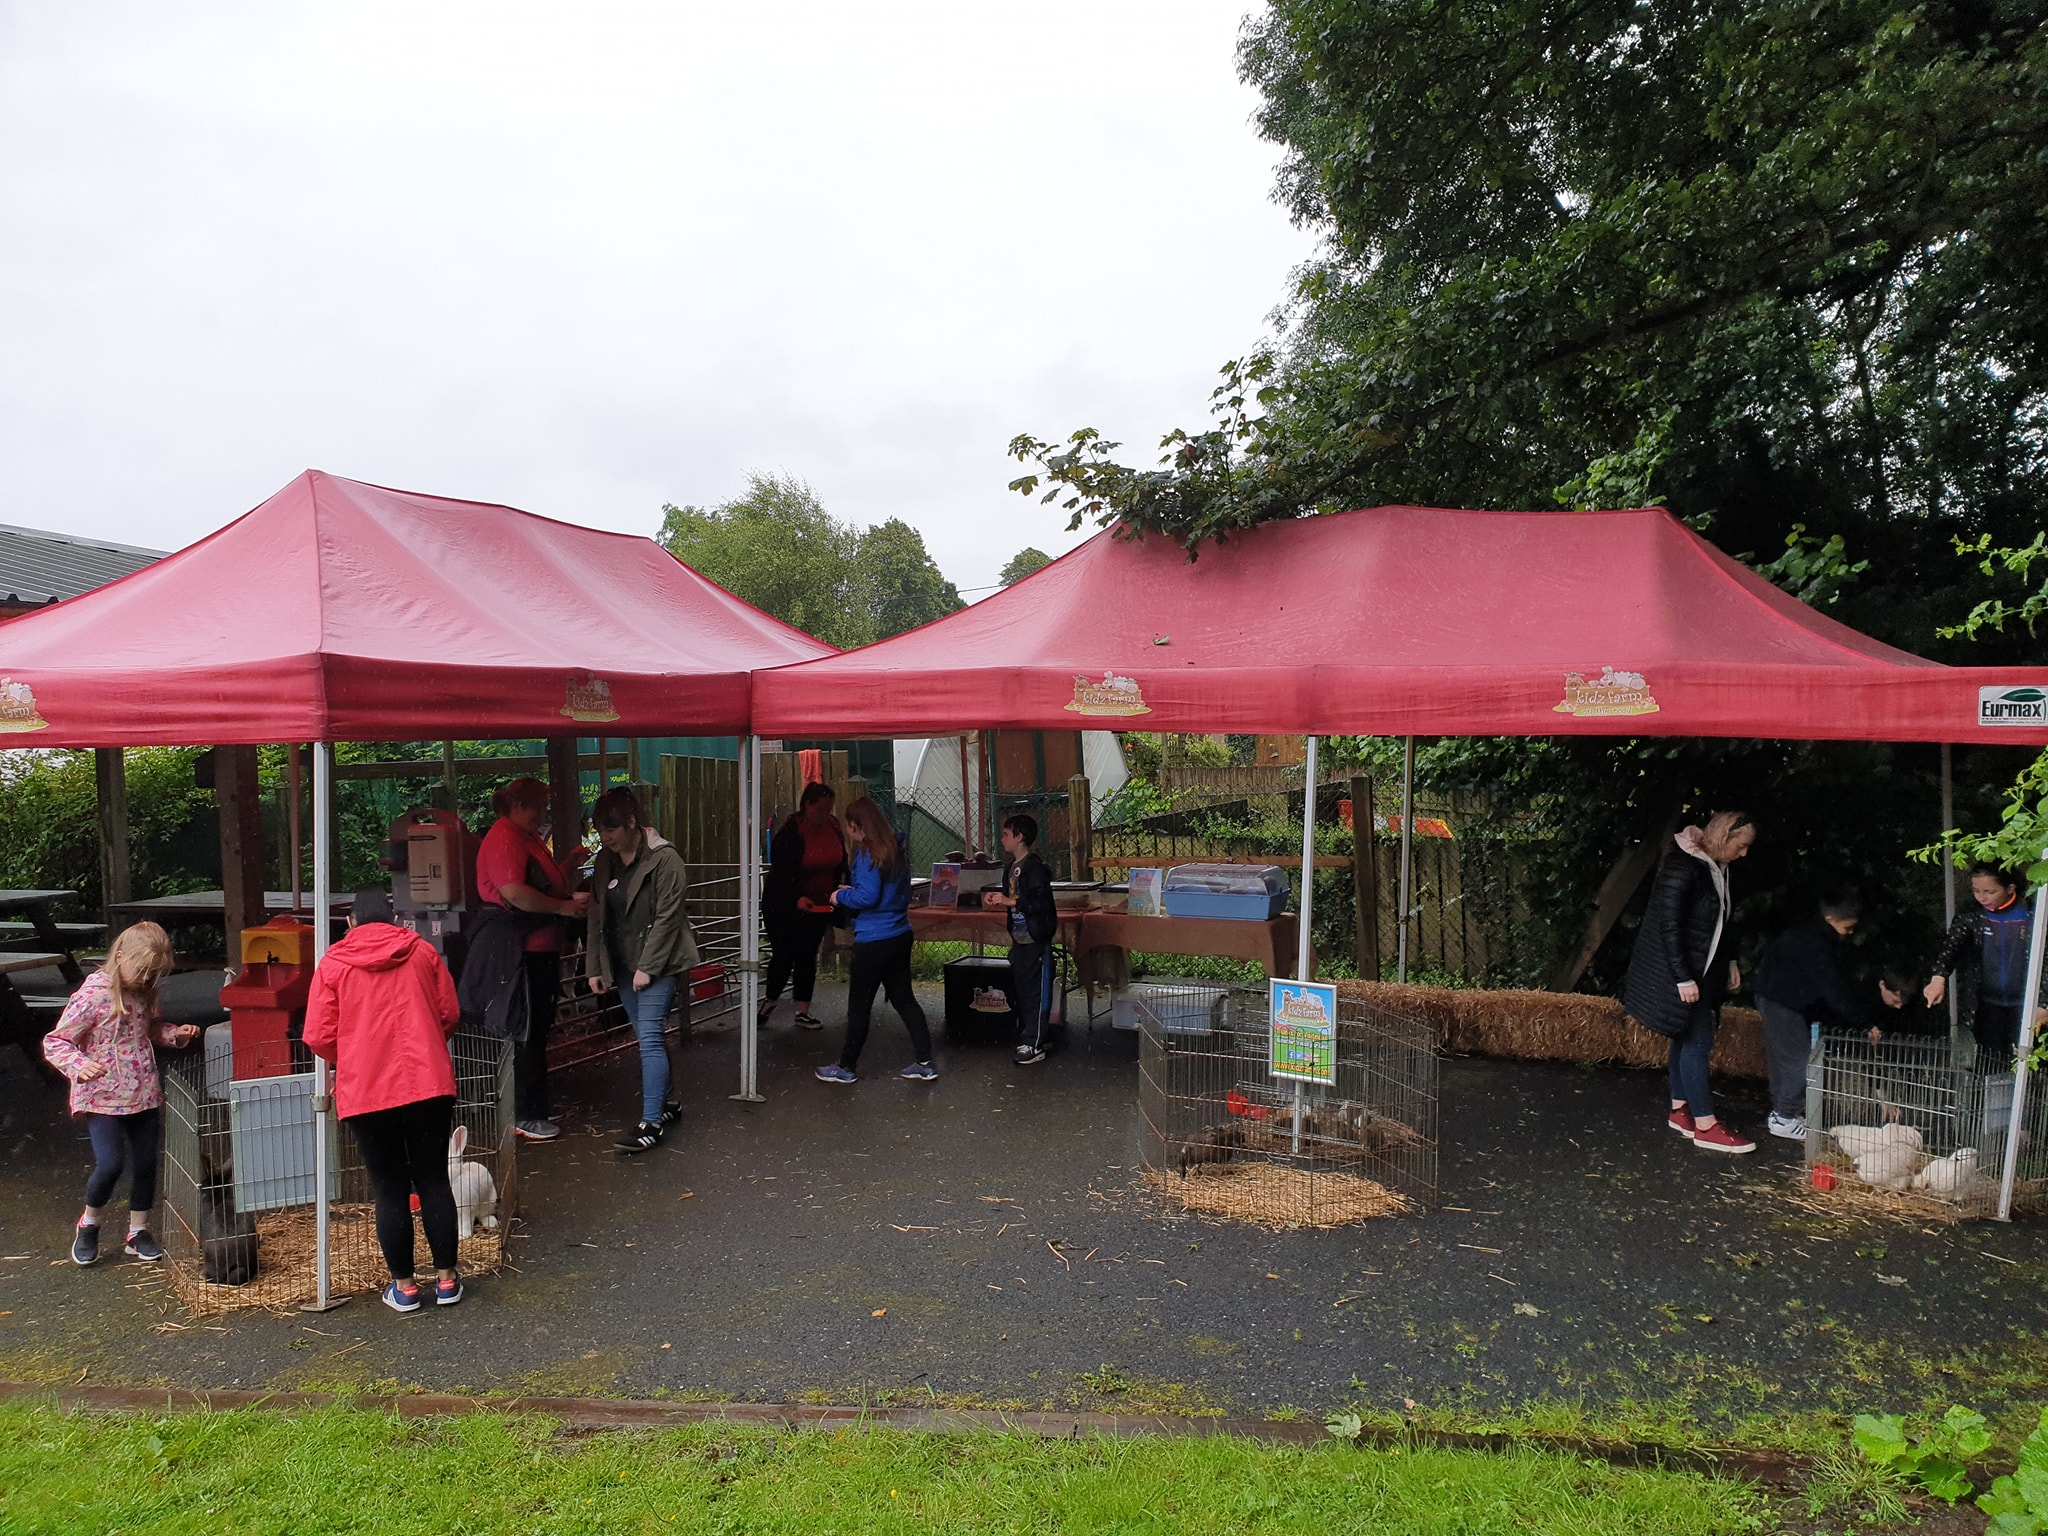 Sheltered from the rain with our gazebos today and ready for a fun morning at Surestart.?????